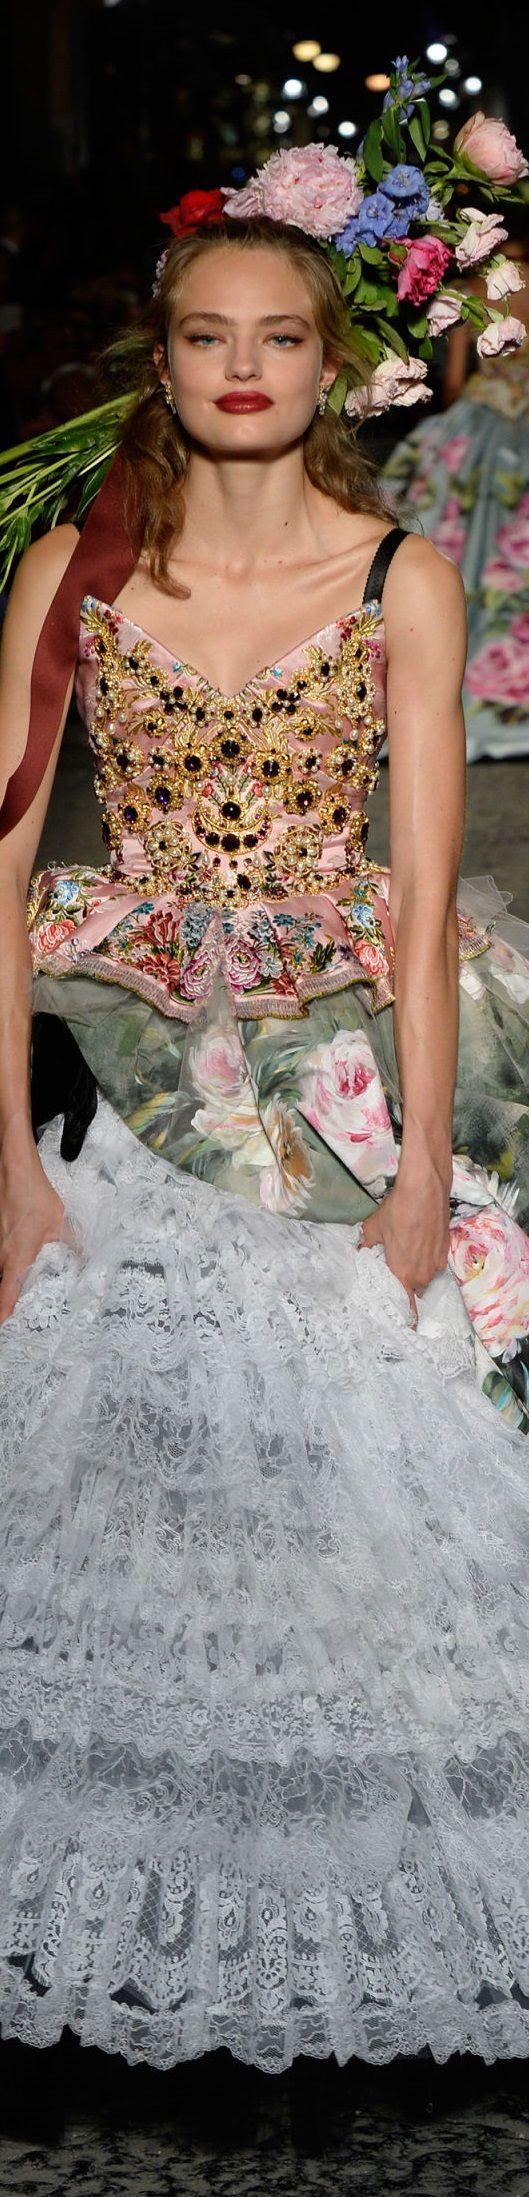 best dolce and gabbana images on pinterest